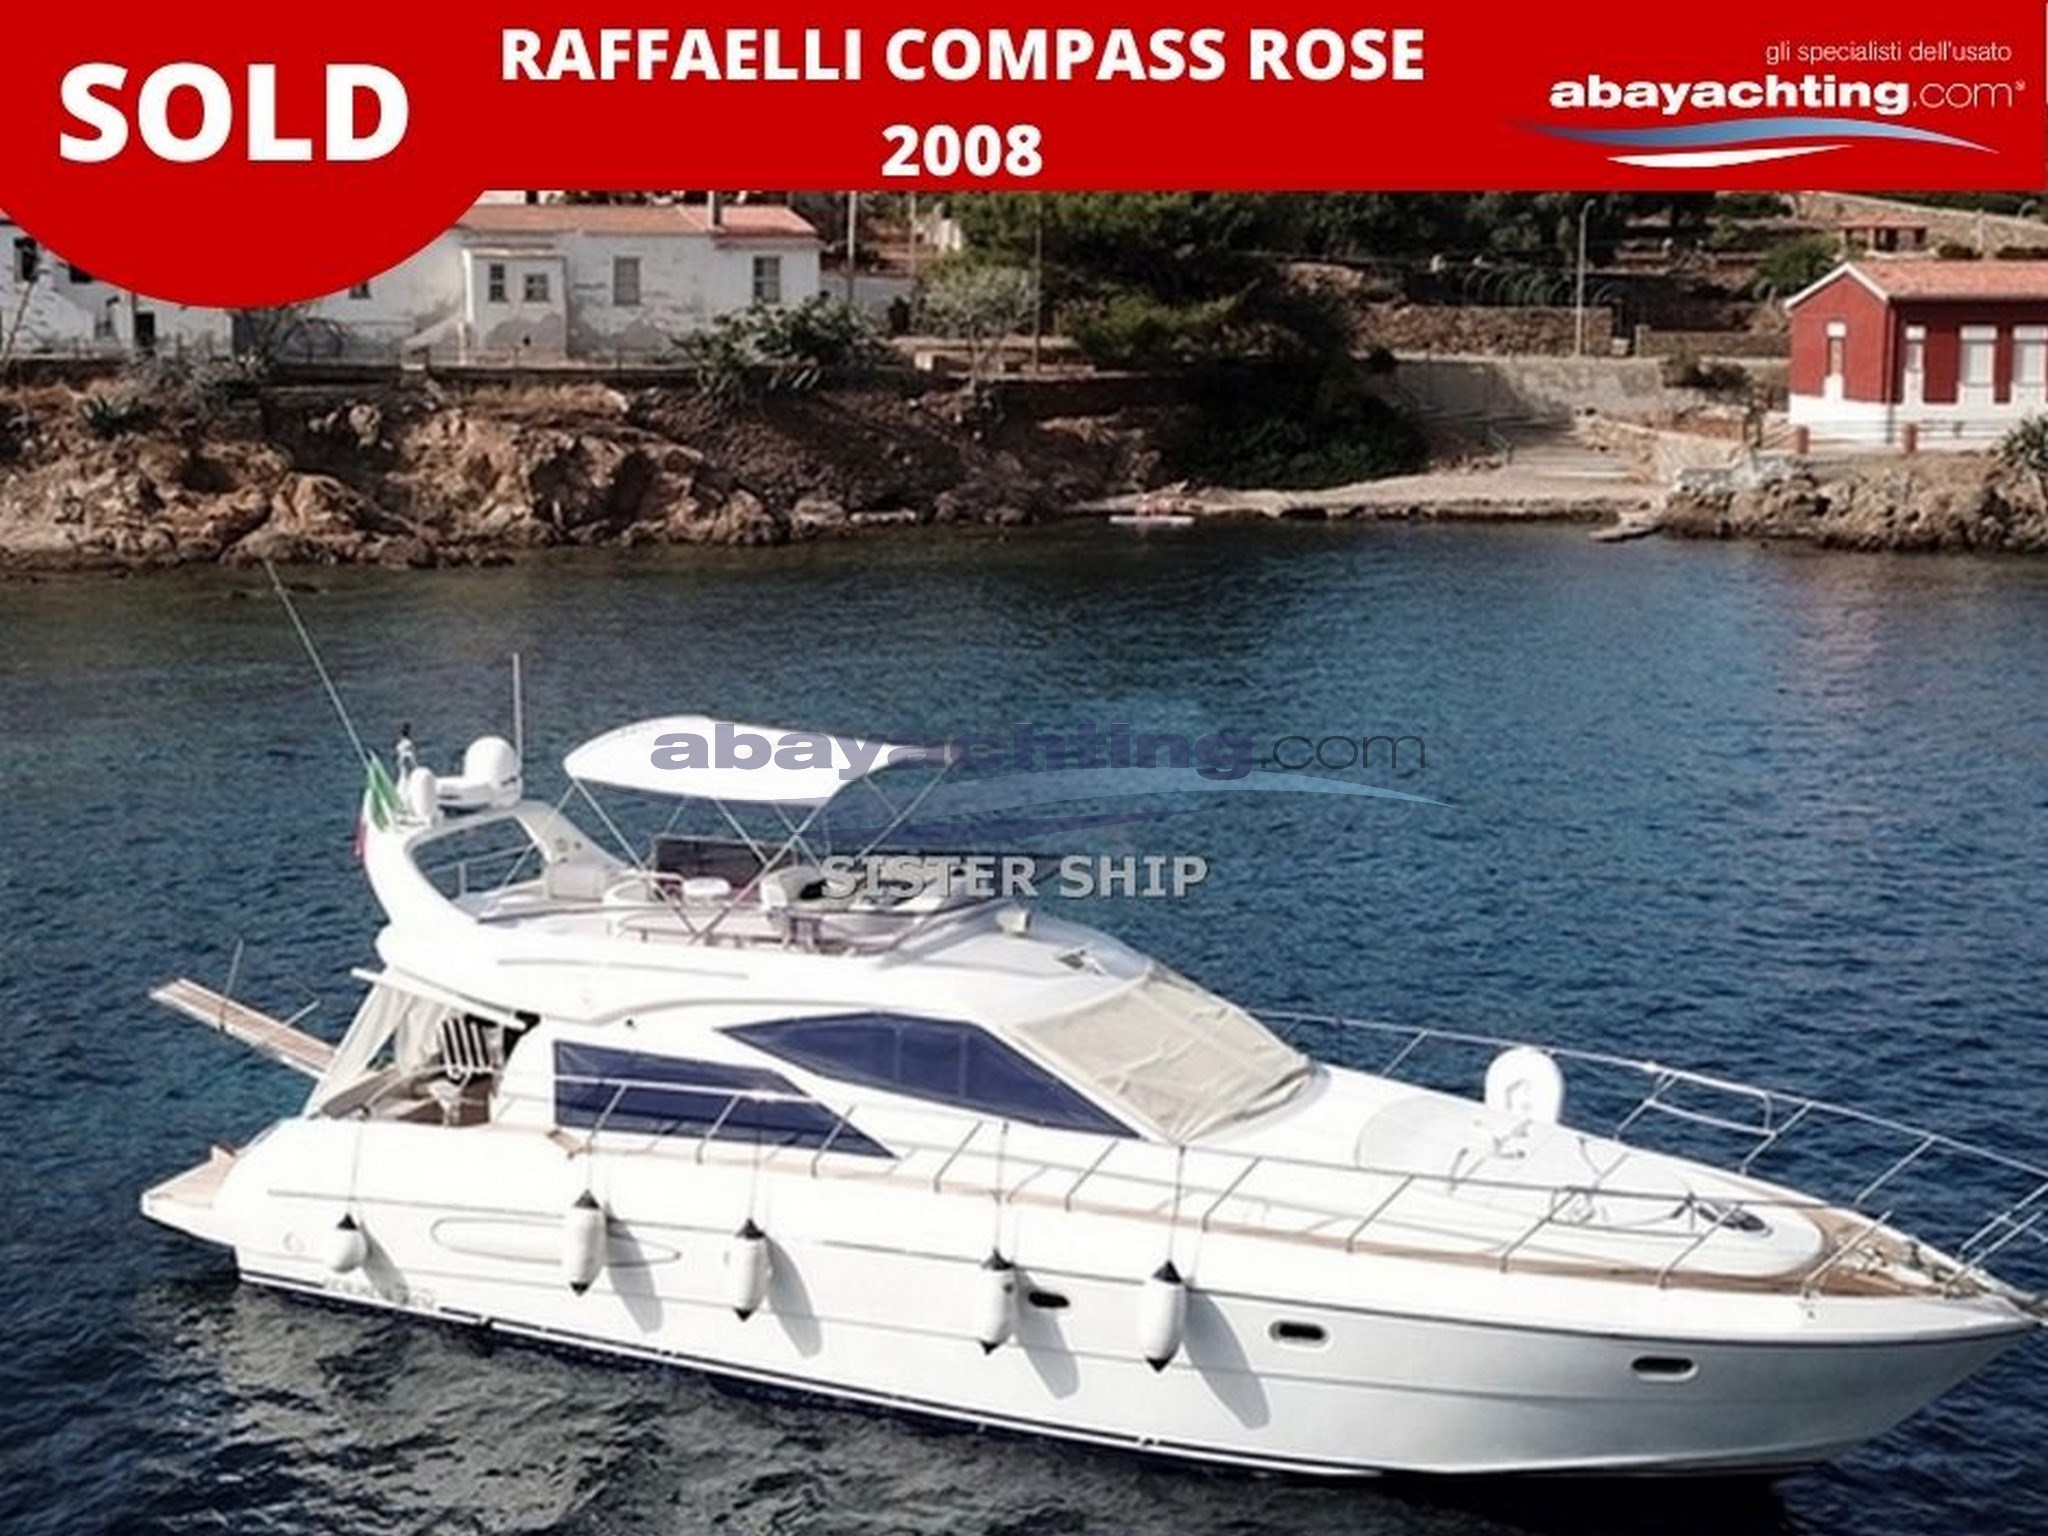 Raffaelli Compass Rose venduto